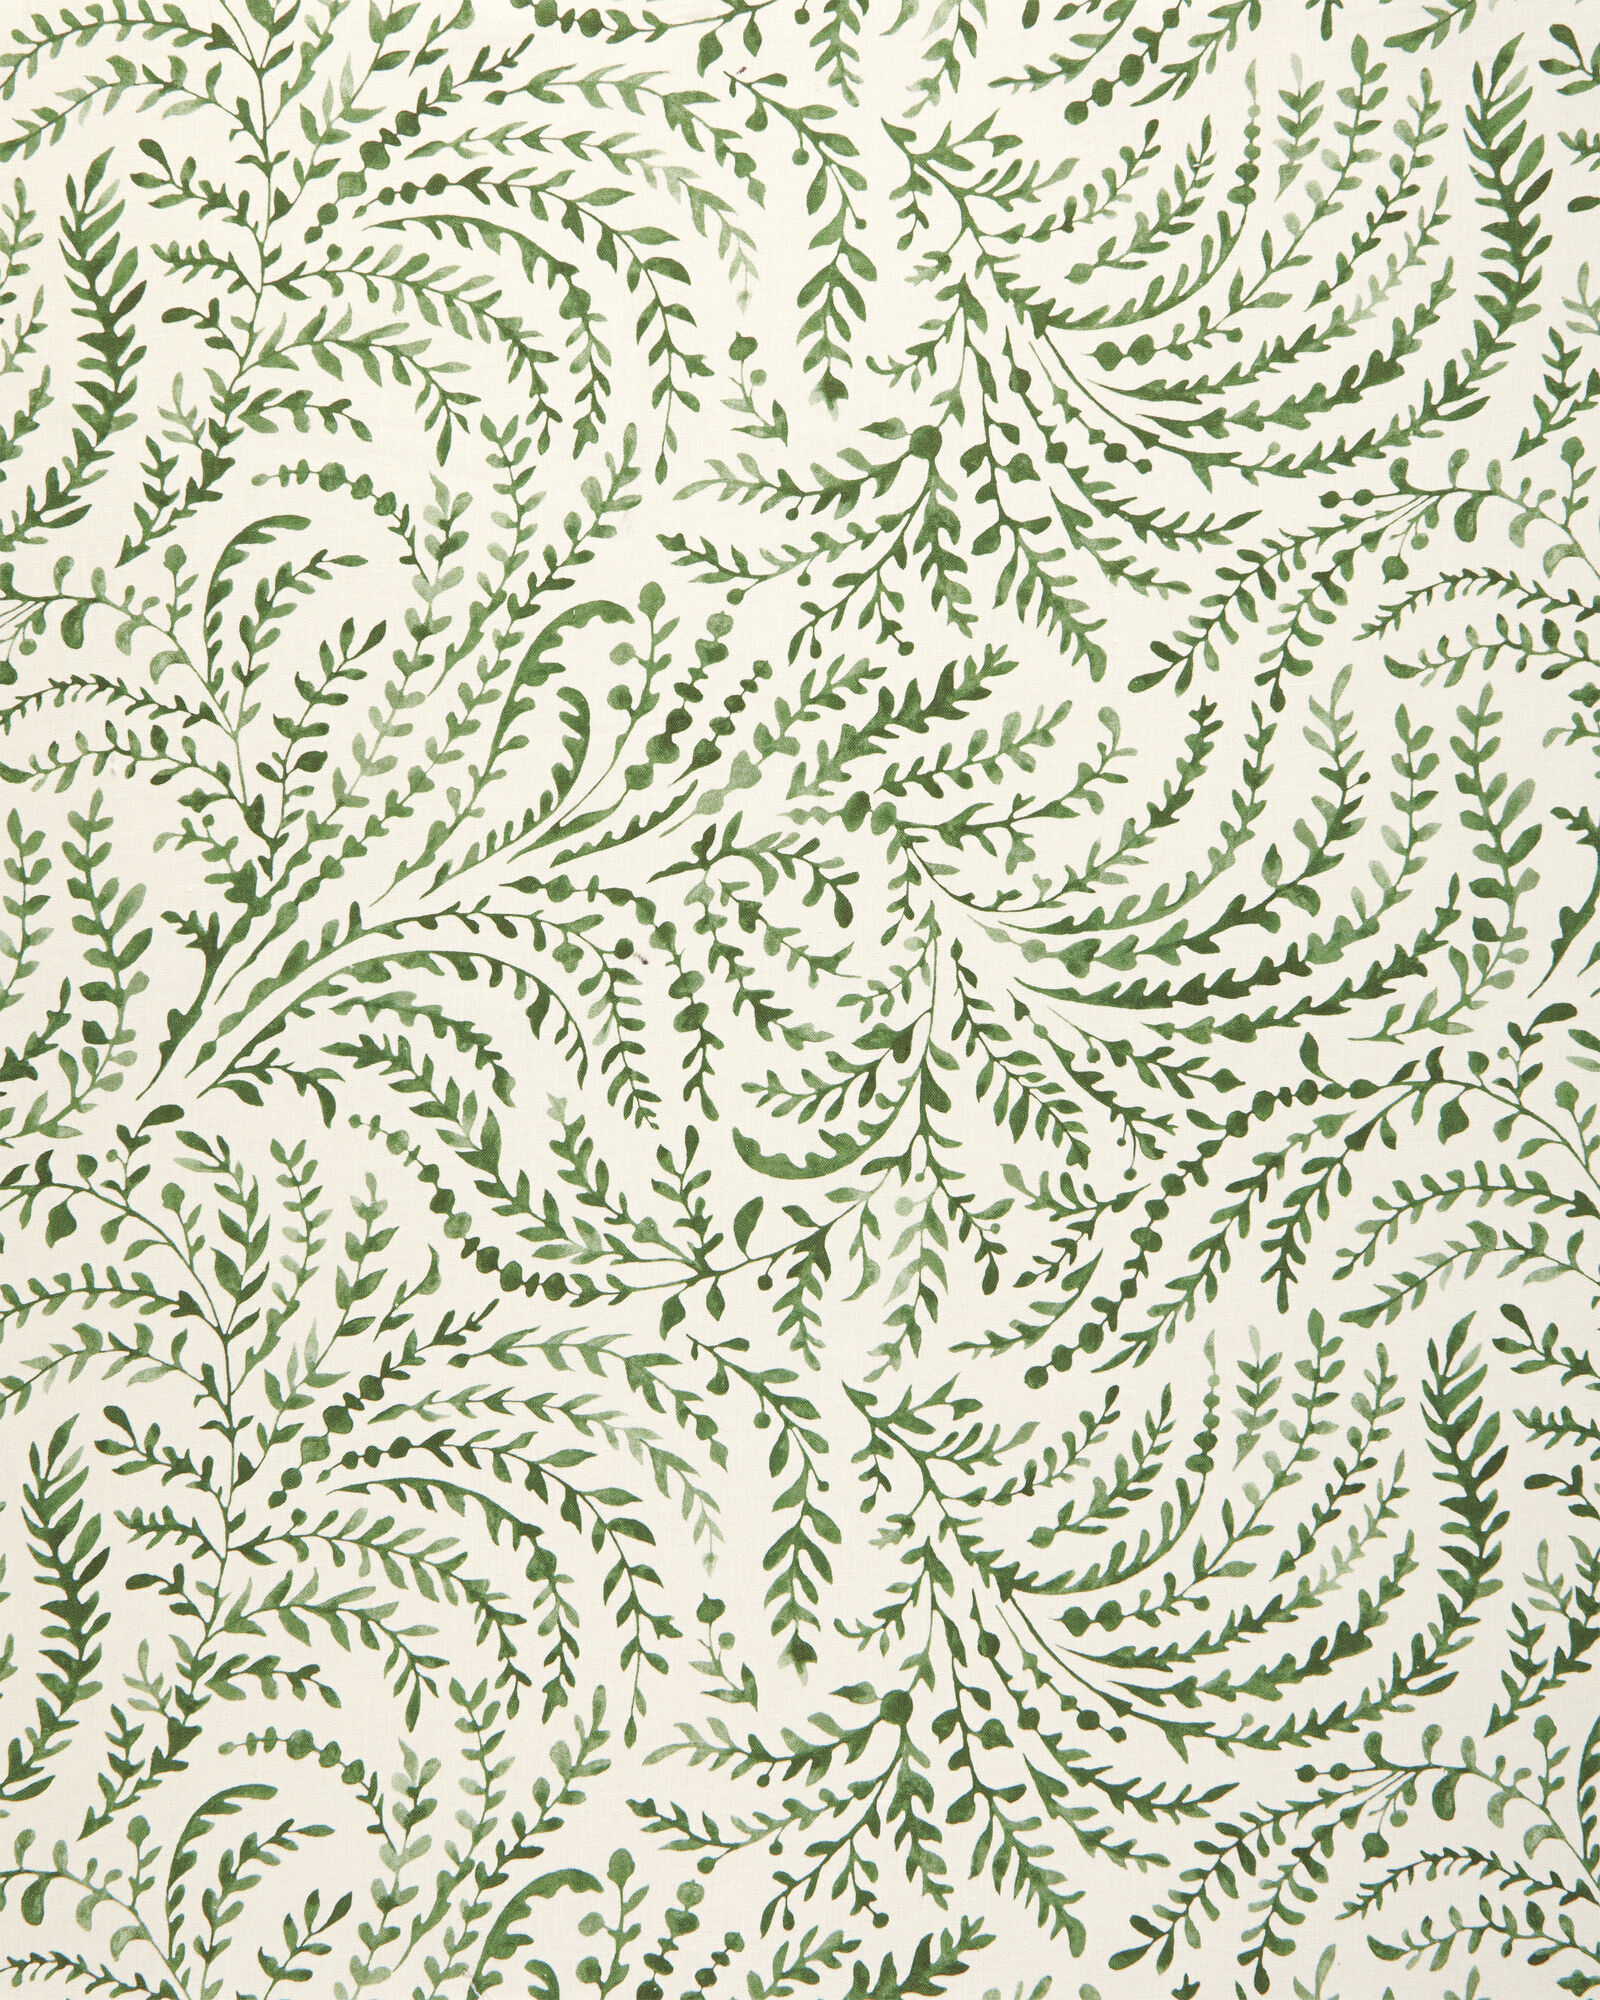 Fabric by the Yard - Priano Linen, Moss